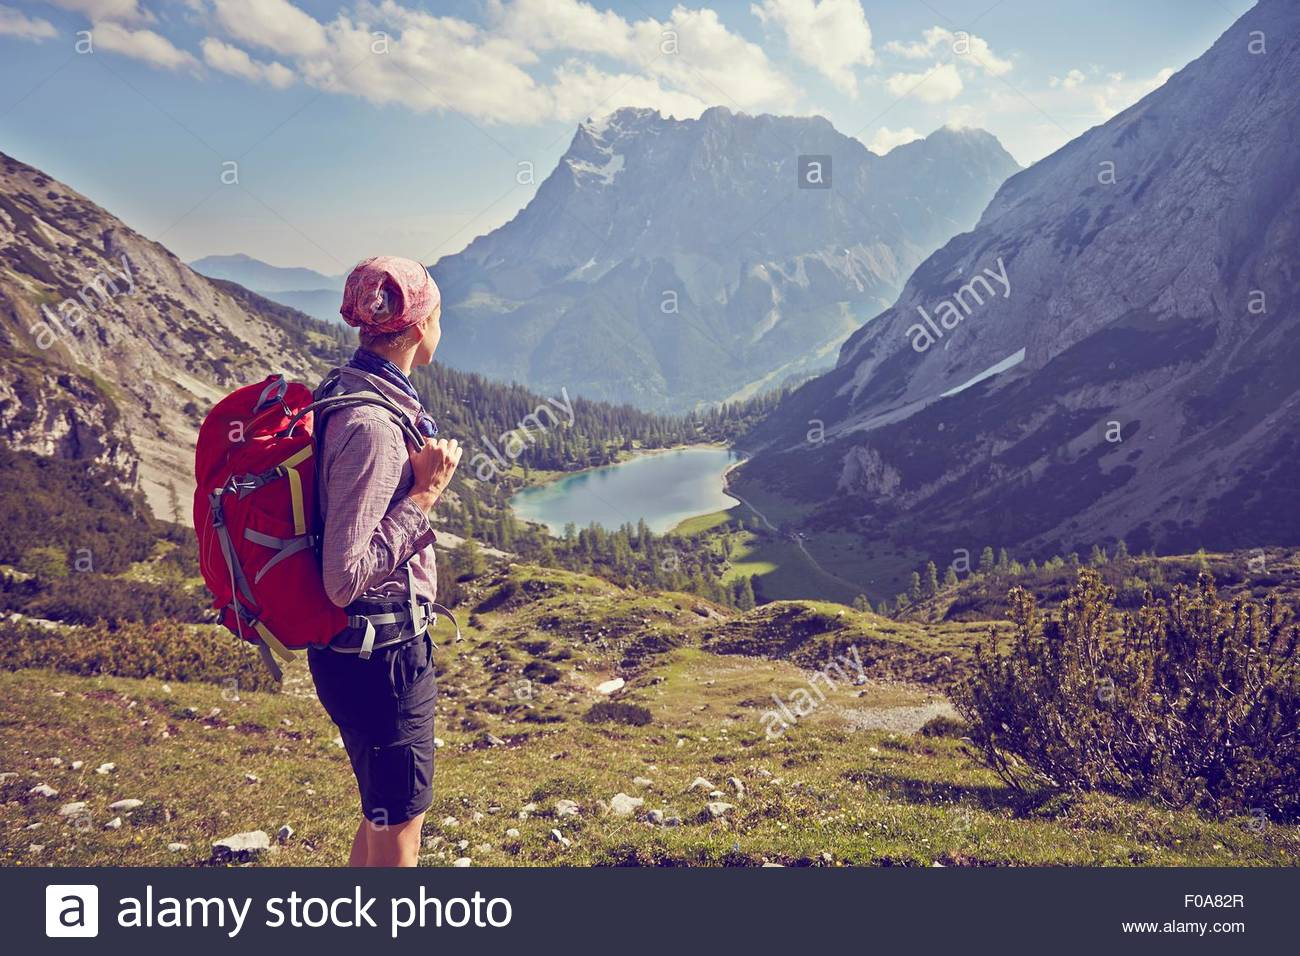 Mature woman, hiking down mountain, looking at view, Ehrwald, Tyrol, Austria - Stock Image